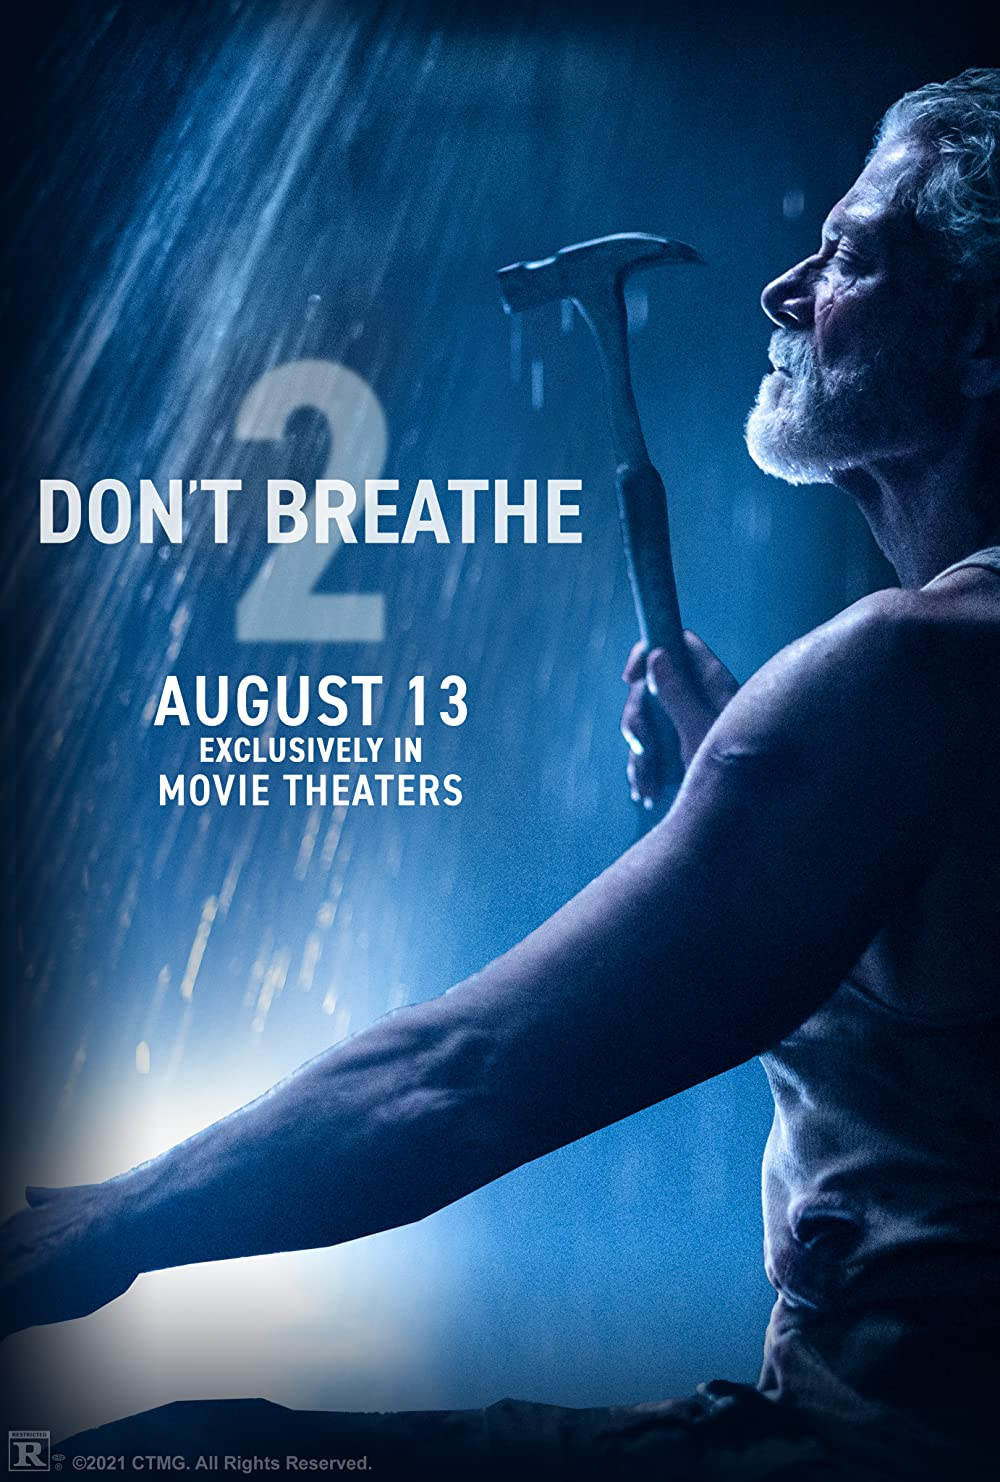 Don't Breathe 2 2021 Hindi Dubbed Official Trailer 1080p HDRip Free Download